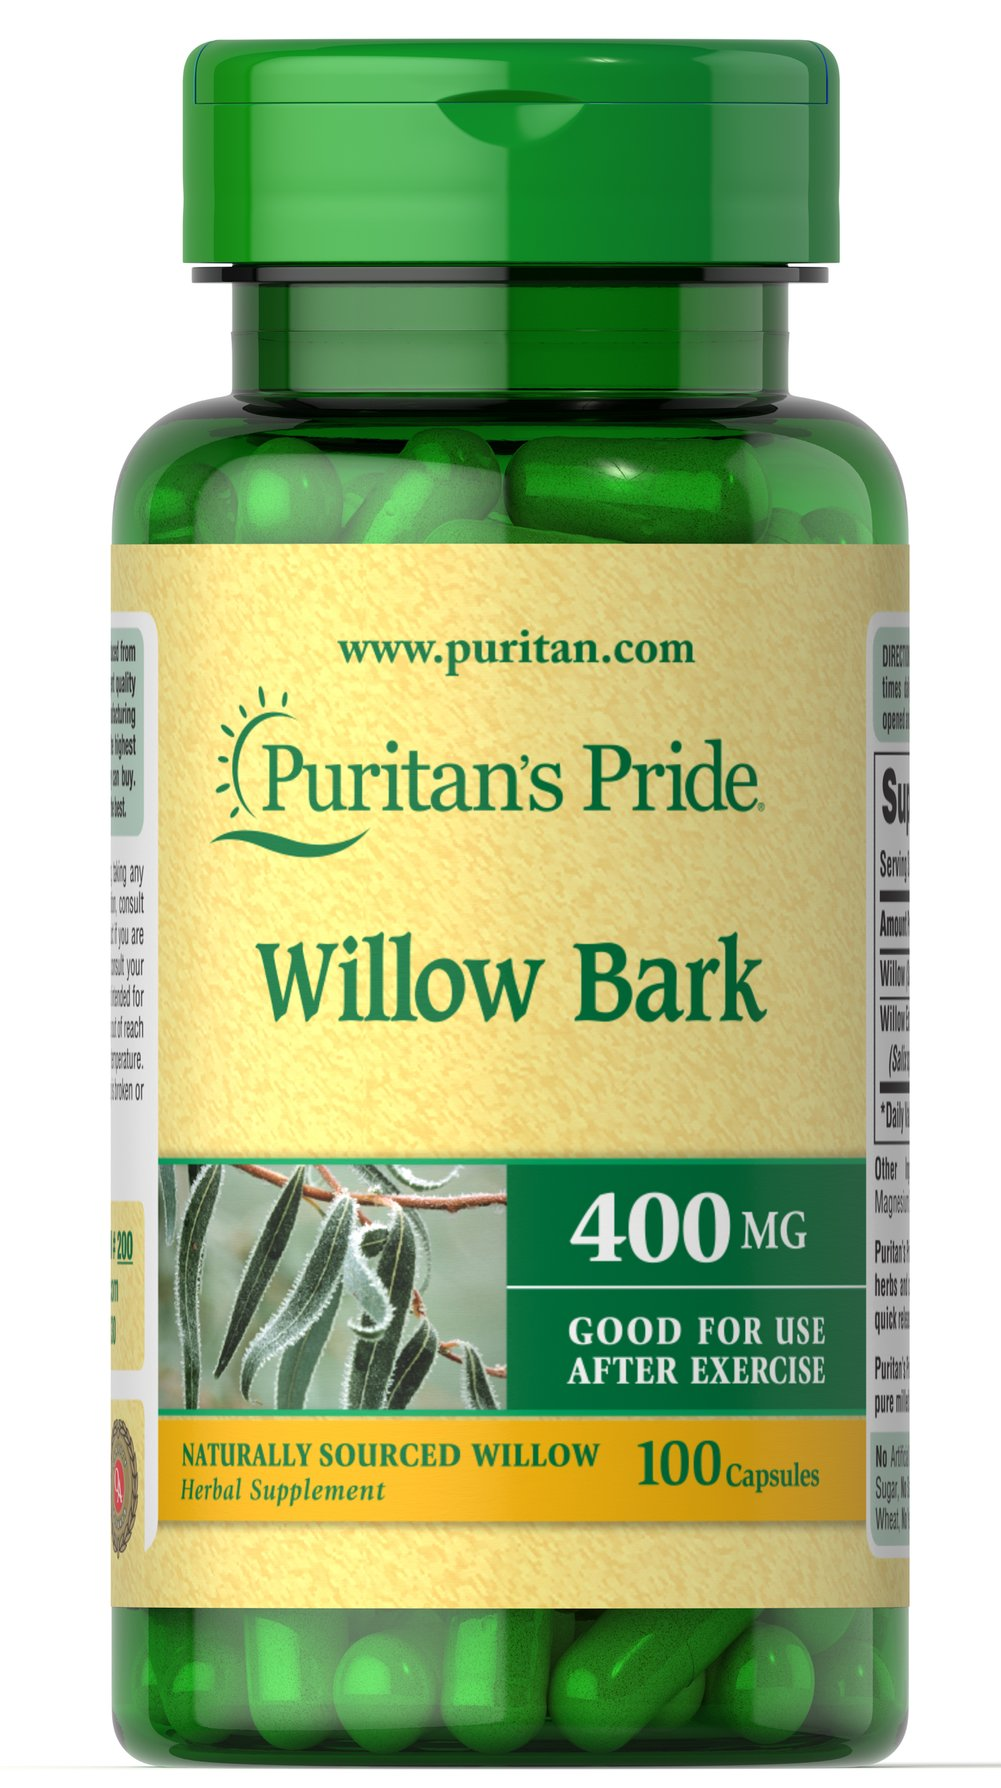 White Willow Bark 400 mg <p>Good for Use After Exercise</p><p></p> 100 Capsules 400 mg $9.99